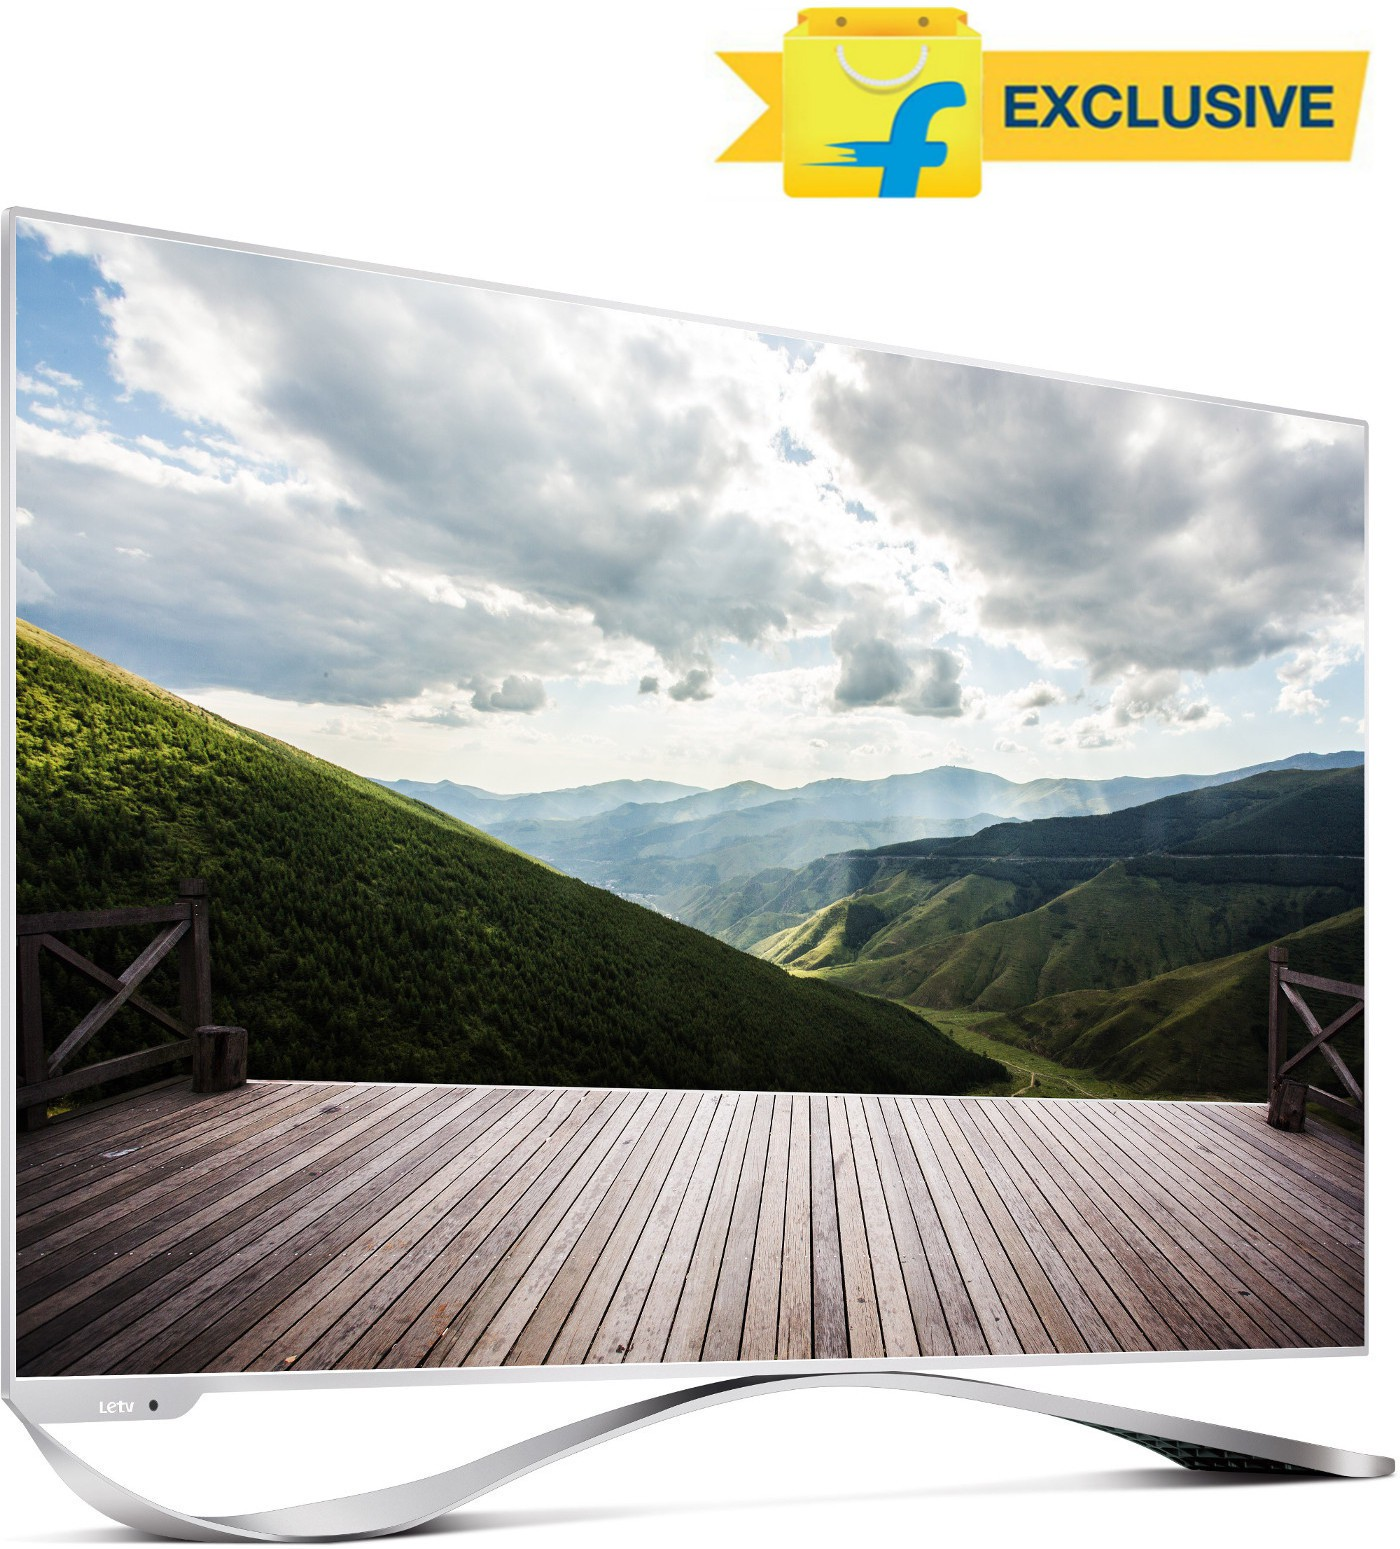 Deals | Starting Rs.44,990 140cm (55) and above TVs